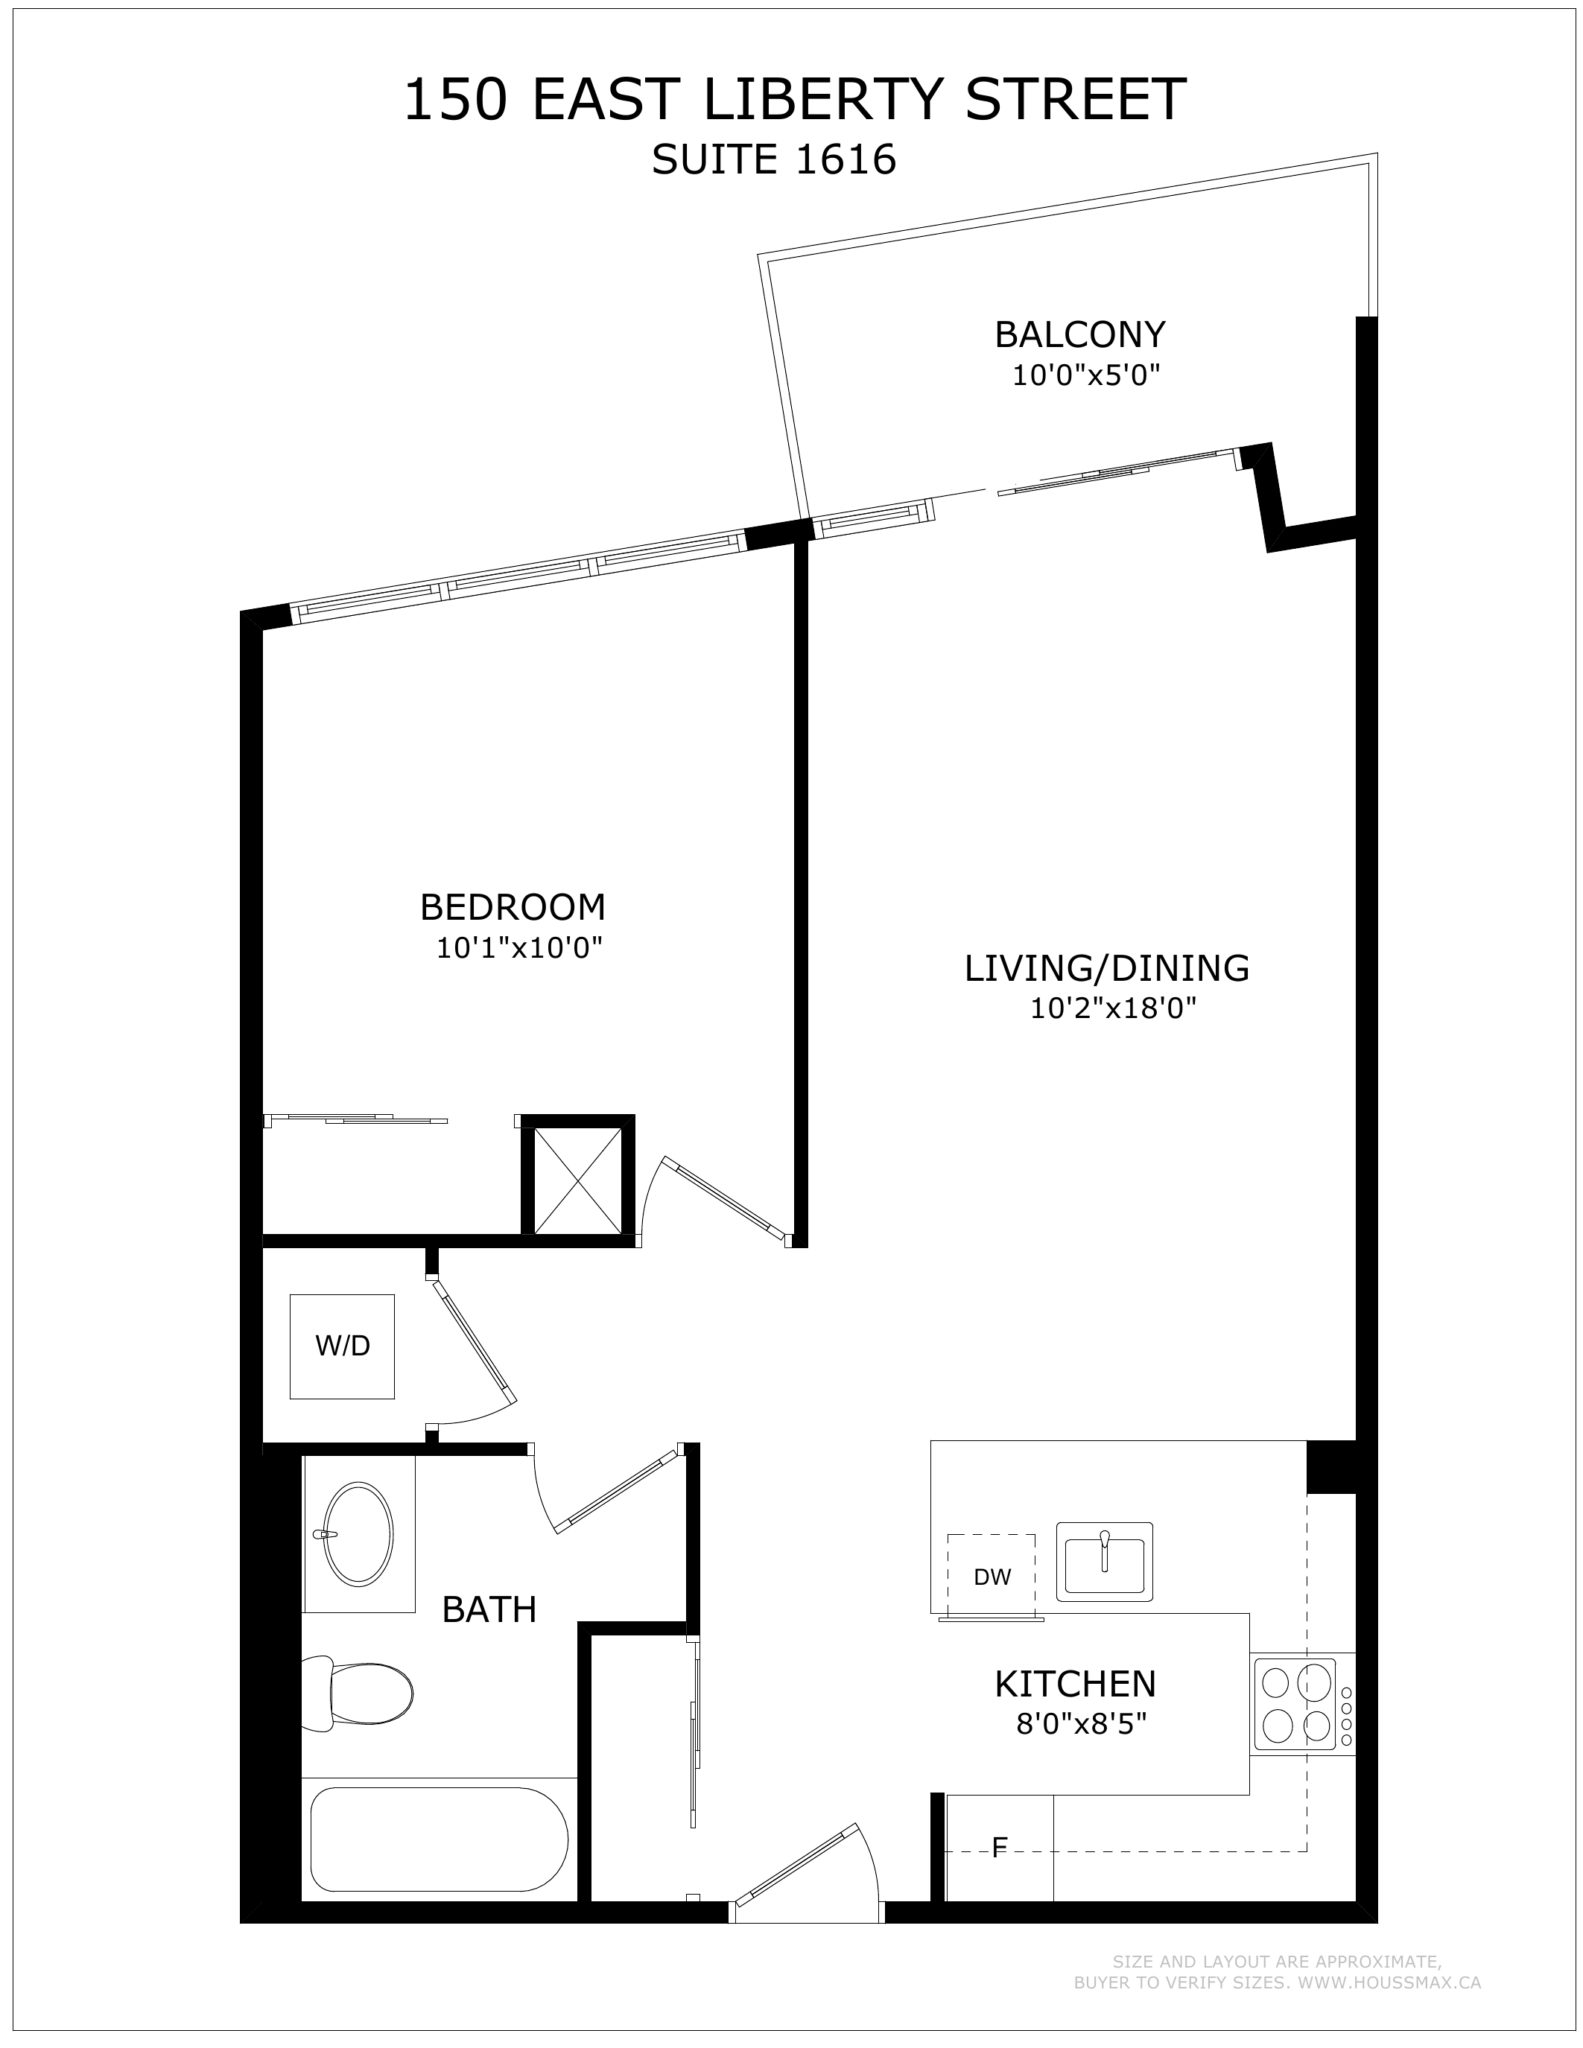 The floor plans for Unit 1616.